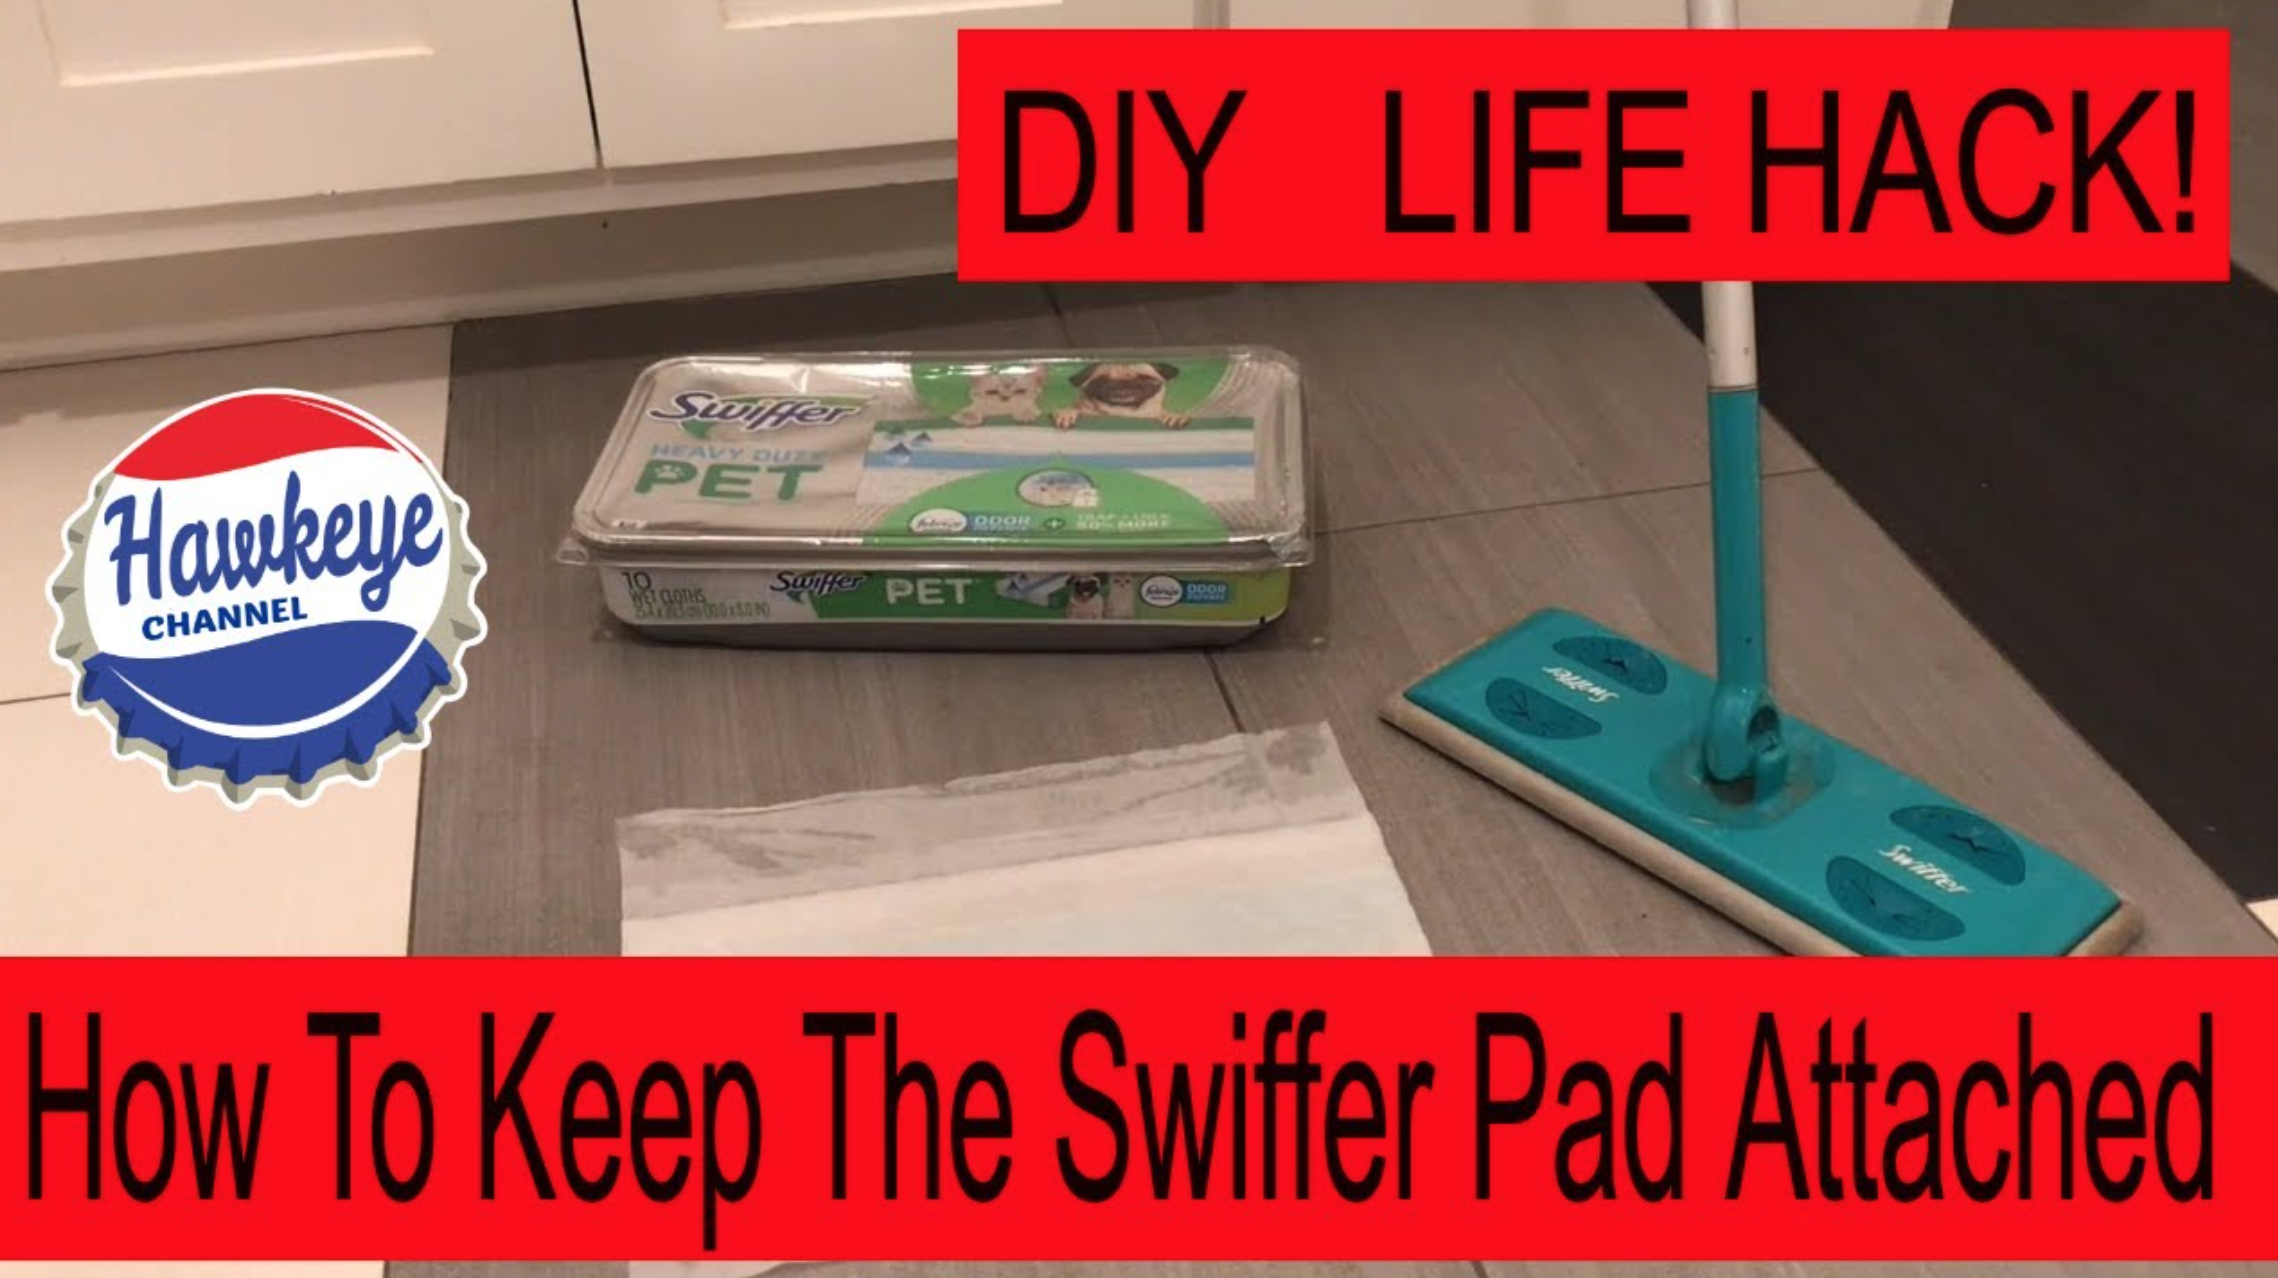 Hawkeye's DIY Video – How to keep the Swiffer Pad on the Swiffer Mop